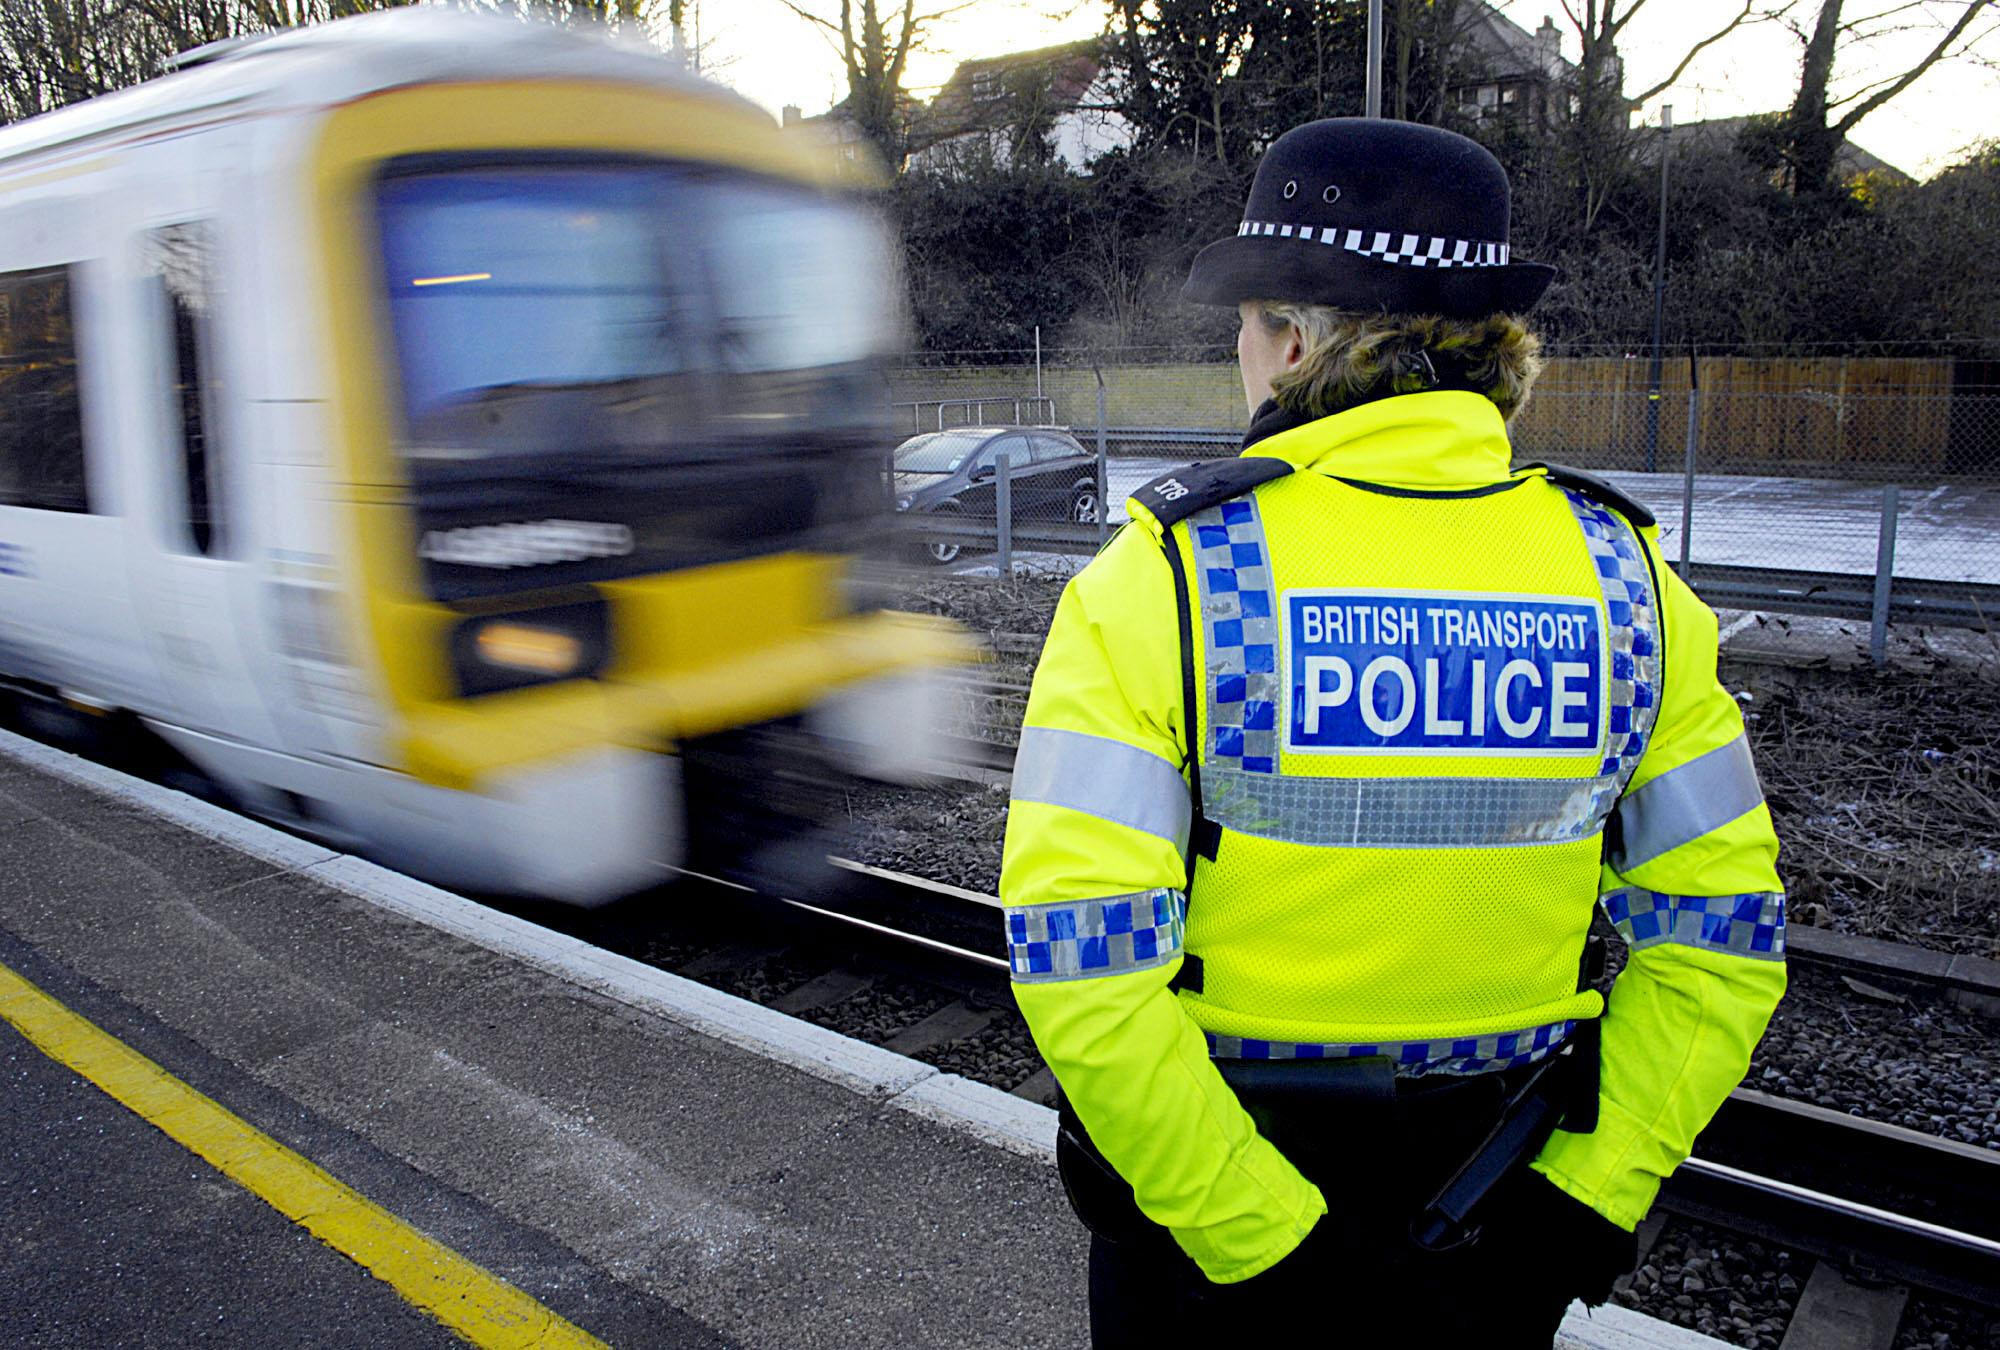 Mayor announces more police for London rail network